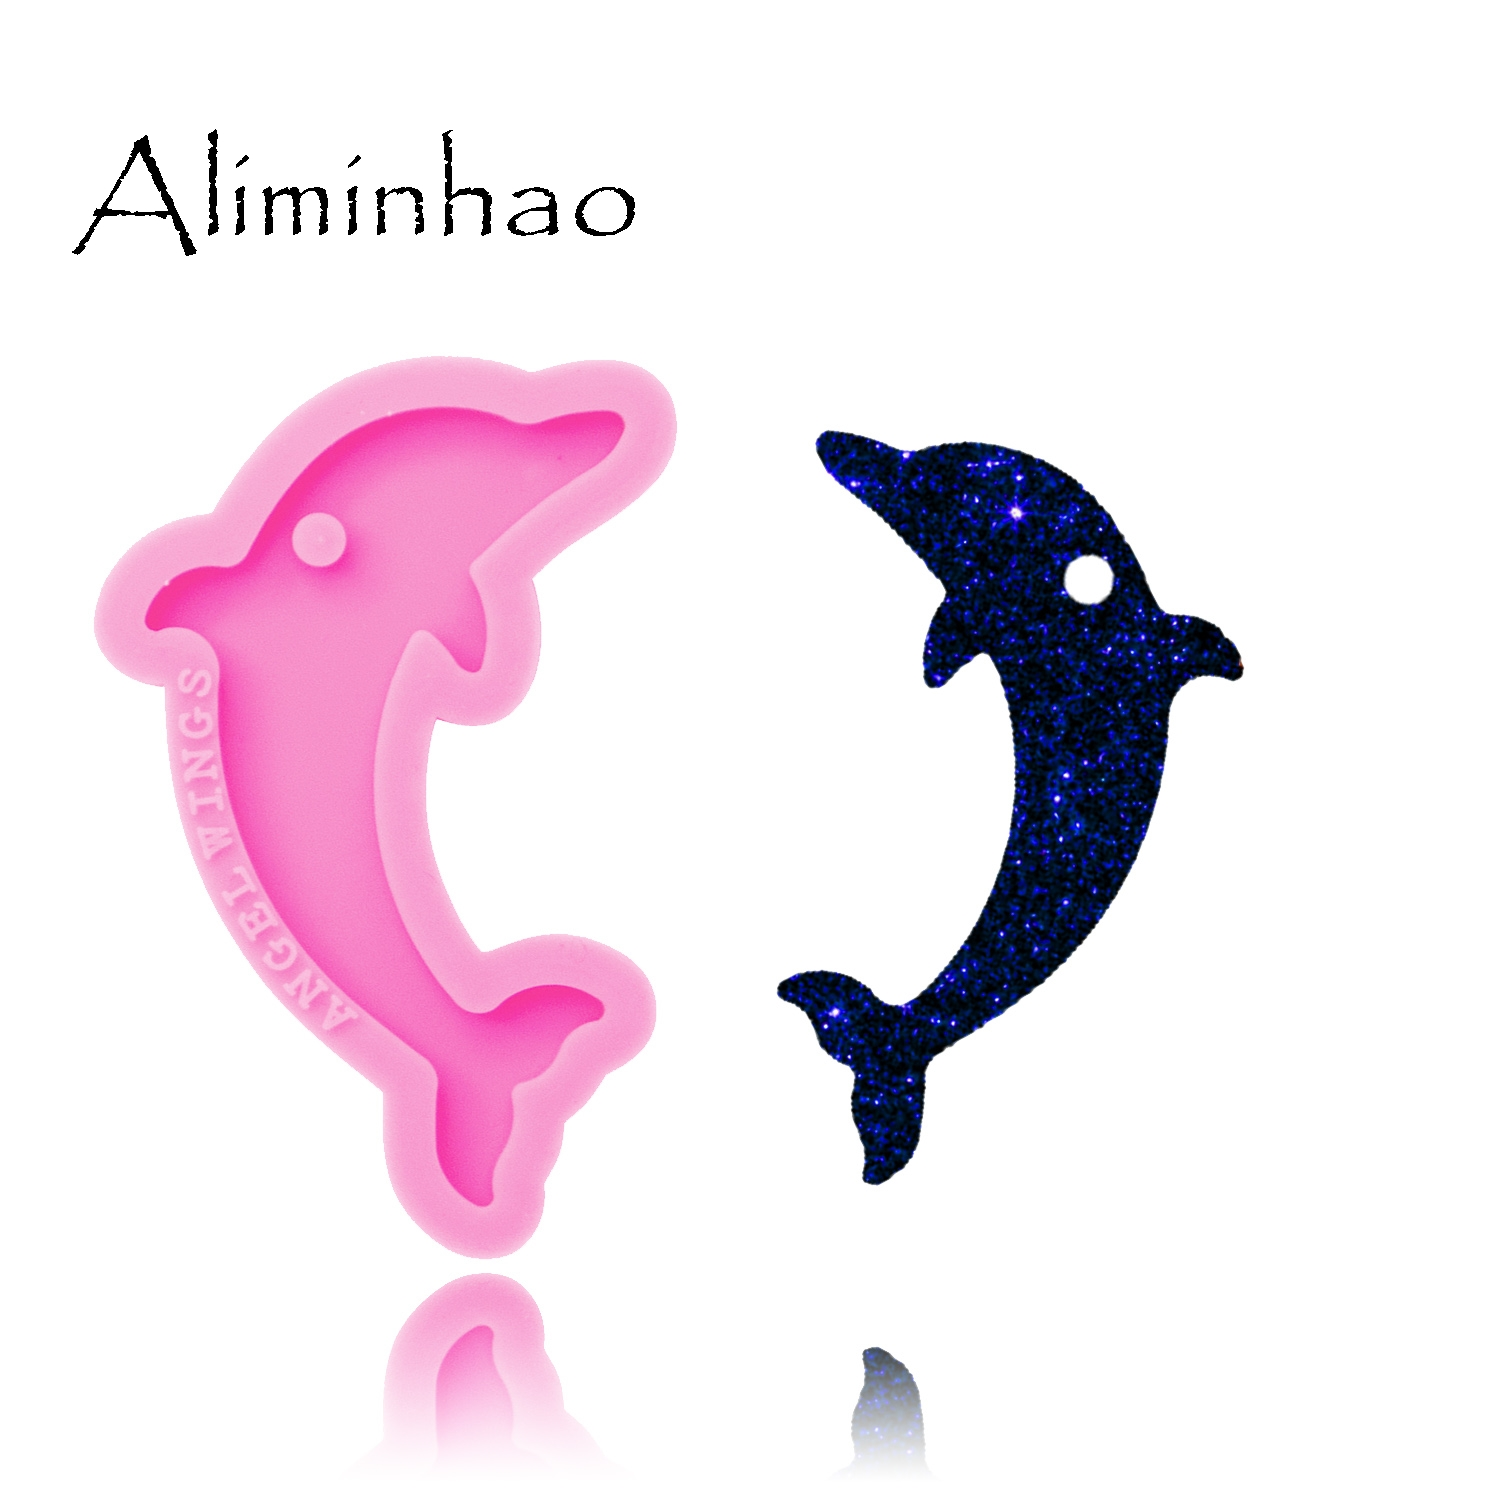 DY0265 Shiny Dolphin Mold Silicone Molds DIY Epoxy And Resin Craft Molds Keychains Mould Custom